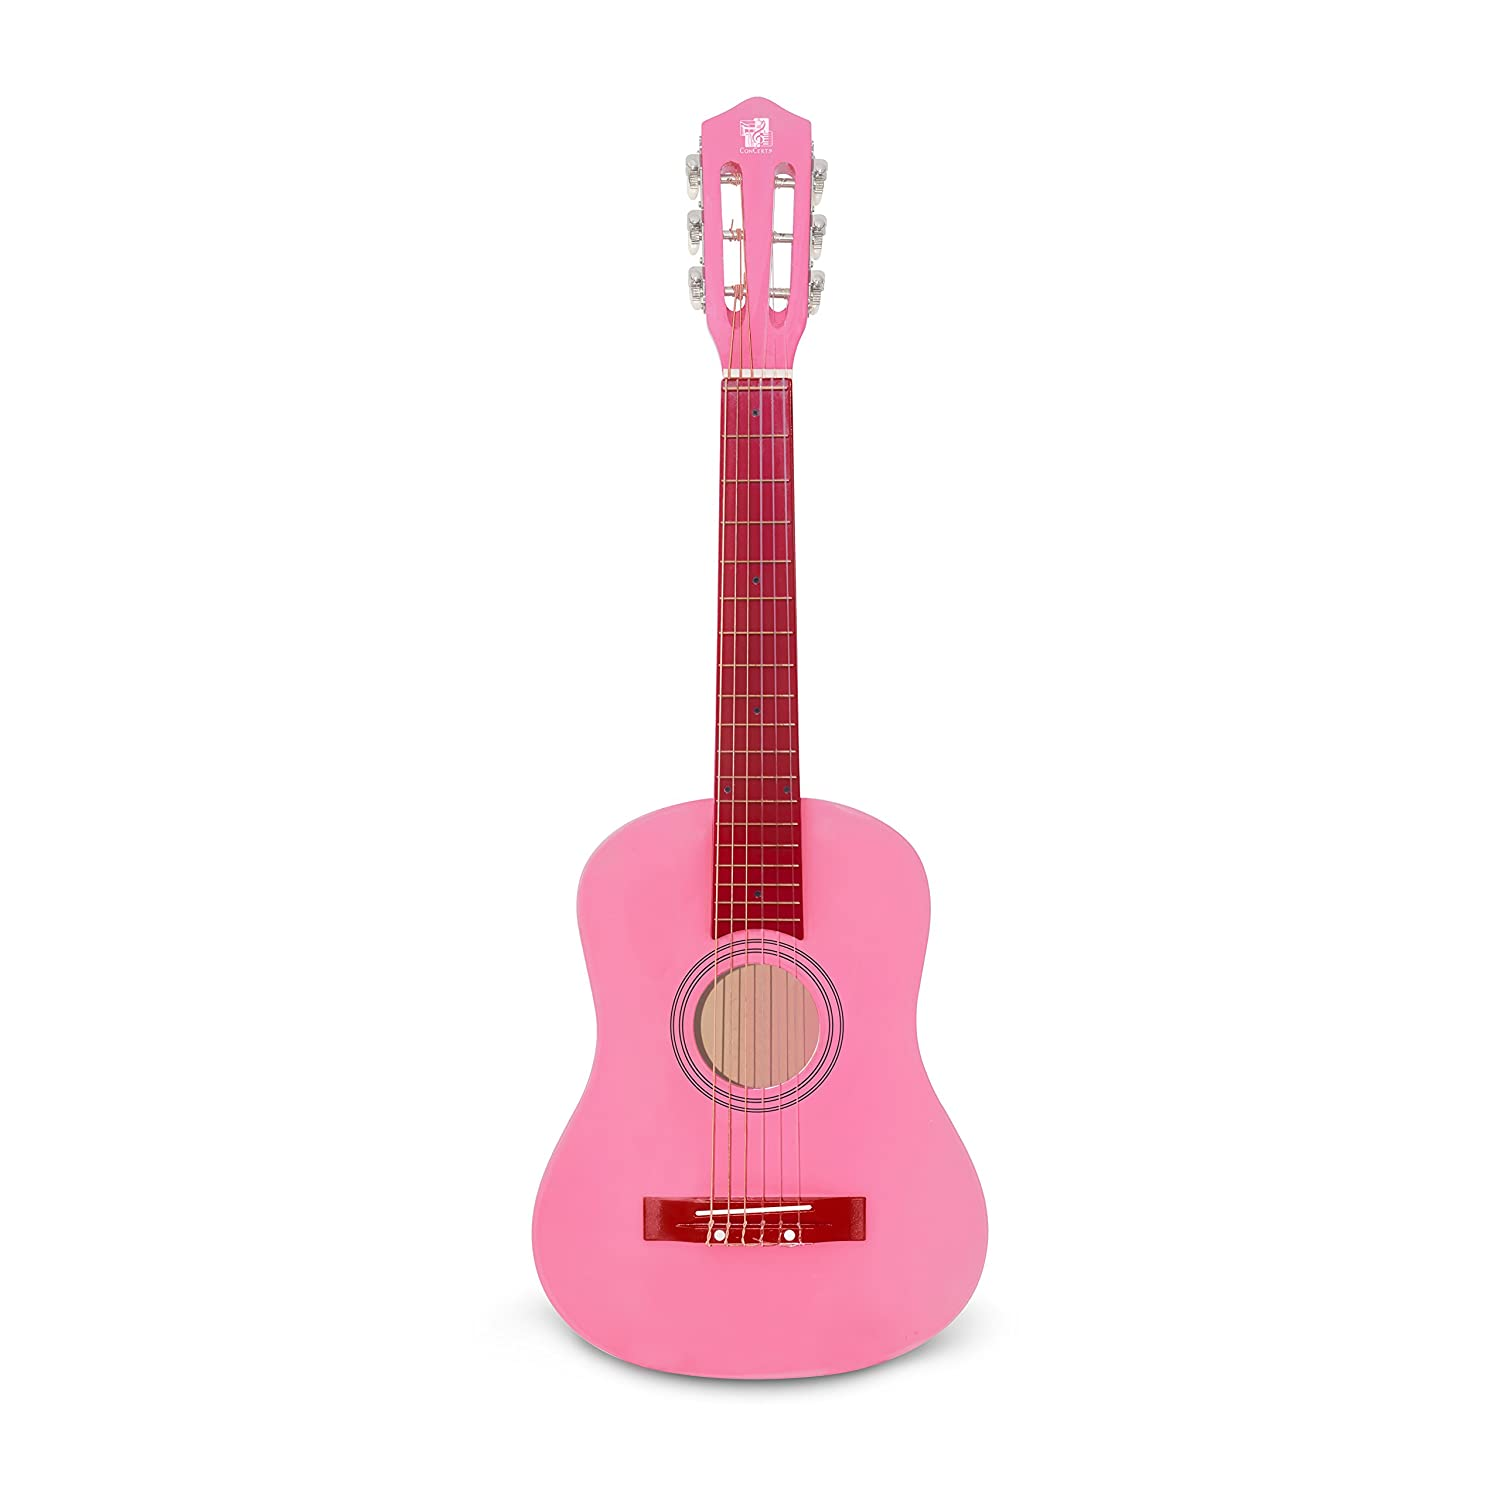 Concerto 30 Inch Pink Classical Guitar, Kids, Girls, CB SKY 701208